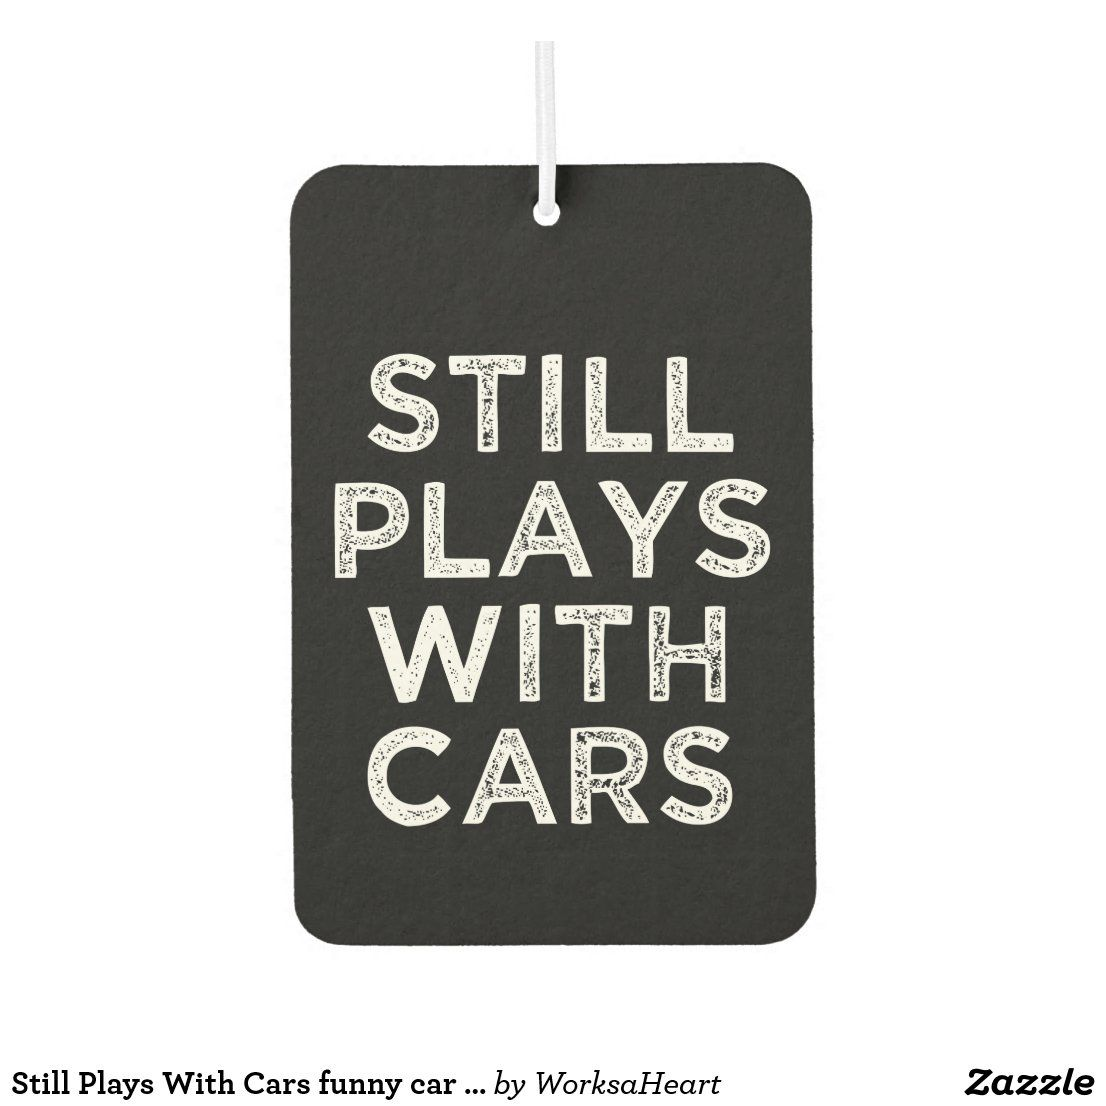 Still Plays With Cars funny car freshener | Zazzle.com